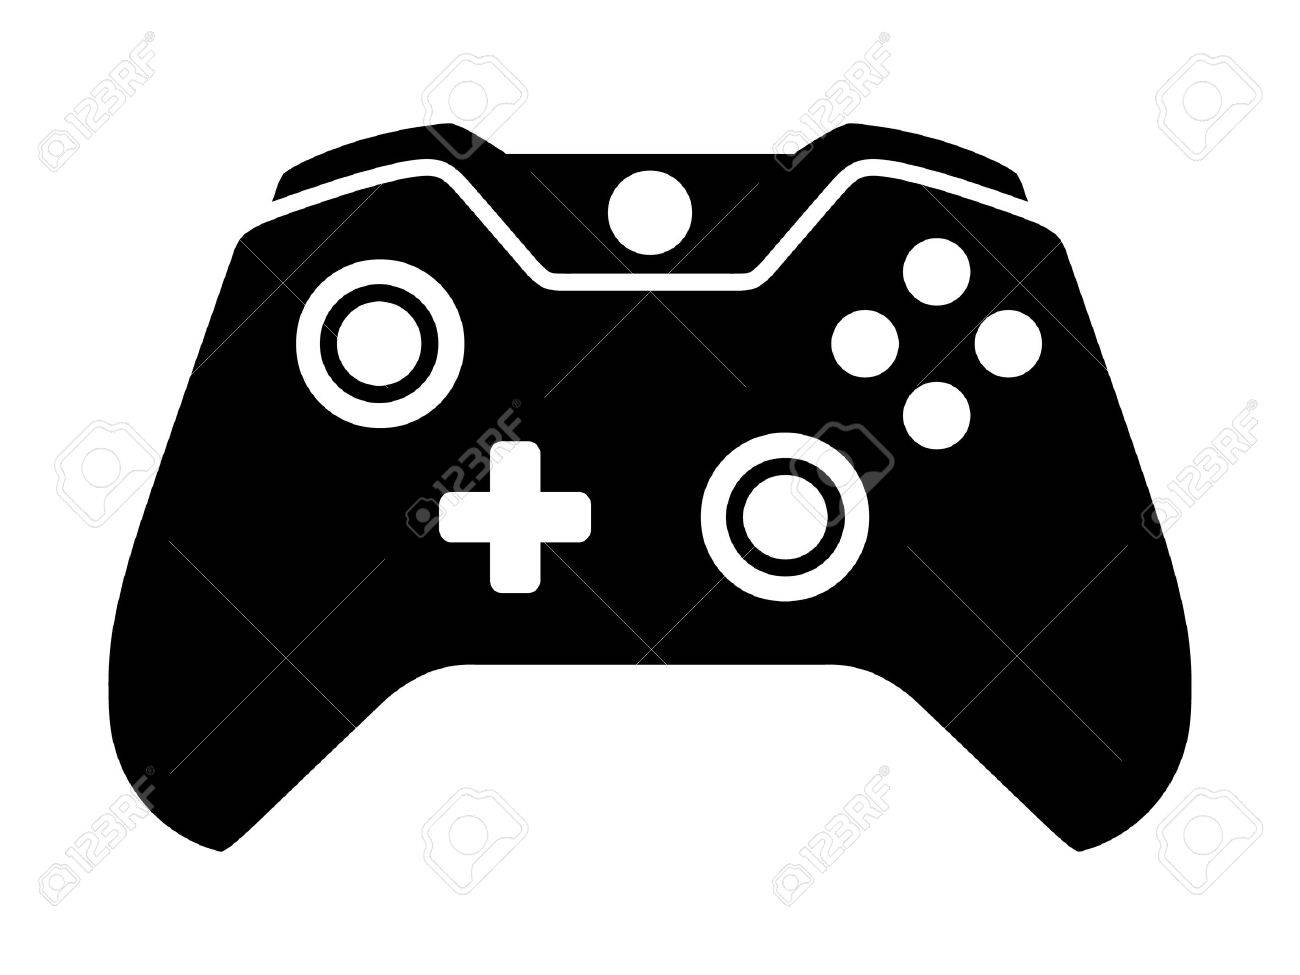 graphic Controller clipart. Gaming station .